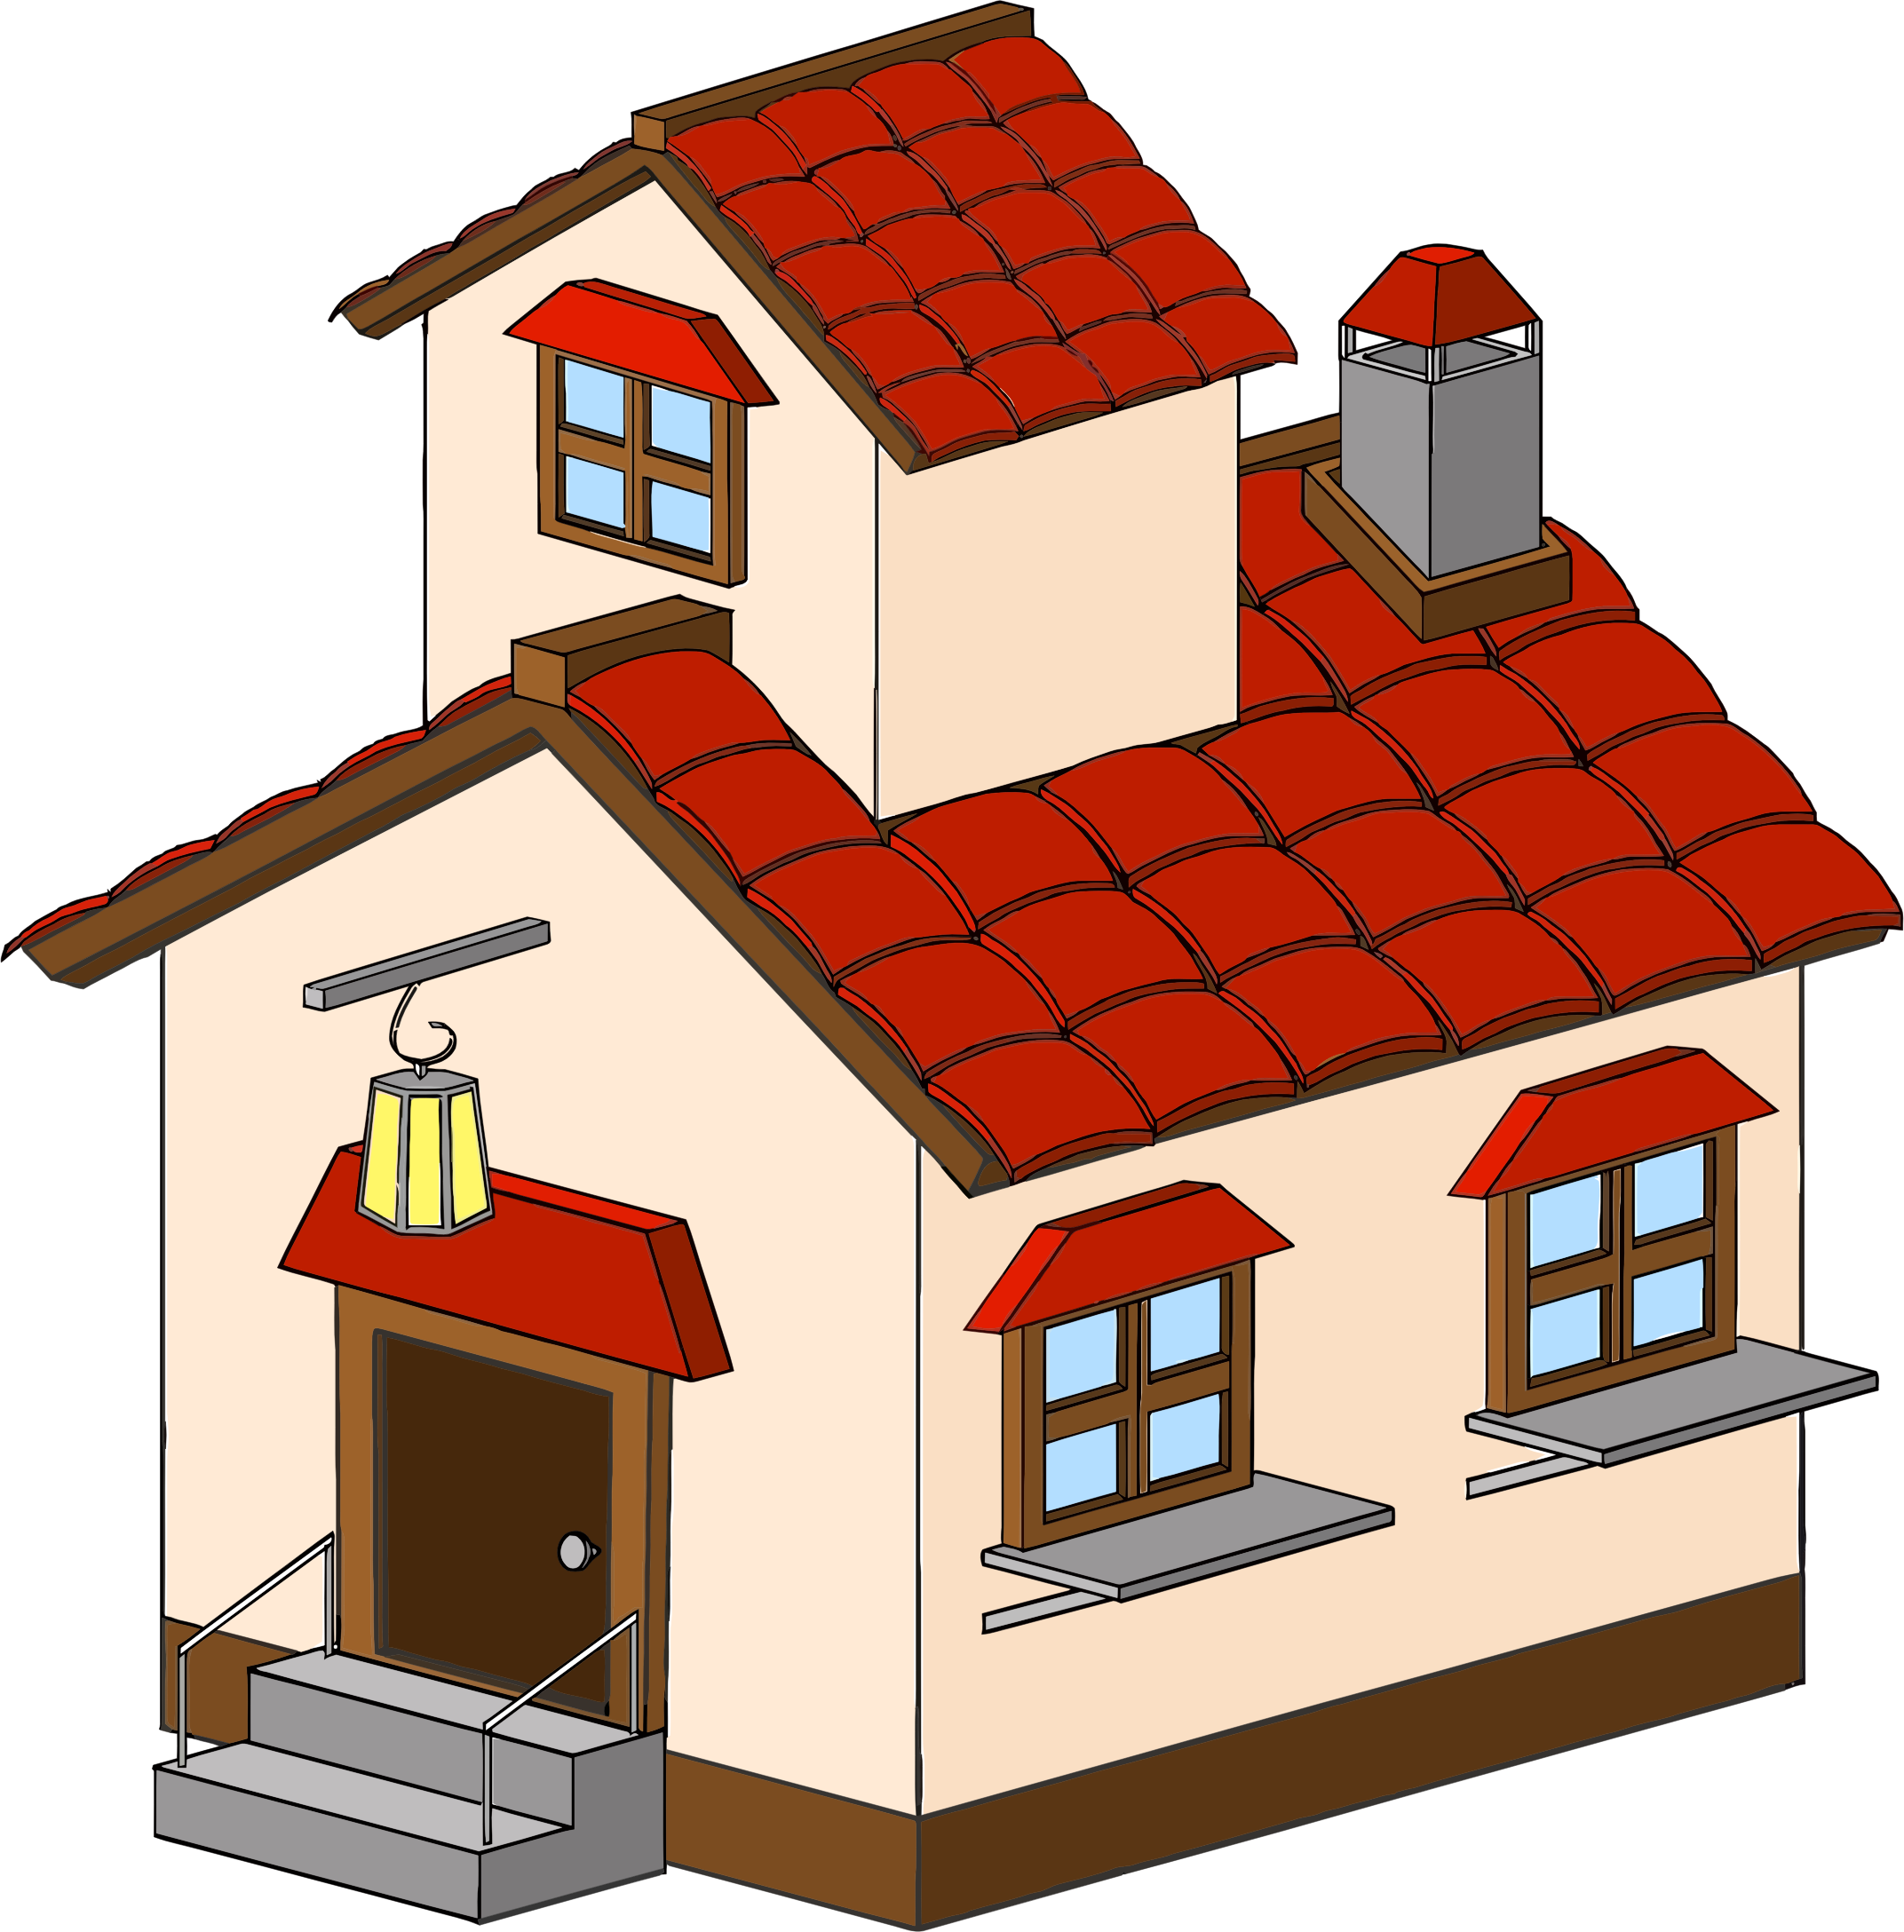 House clip art png. Cartoon haunted clipart picture